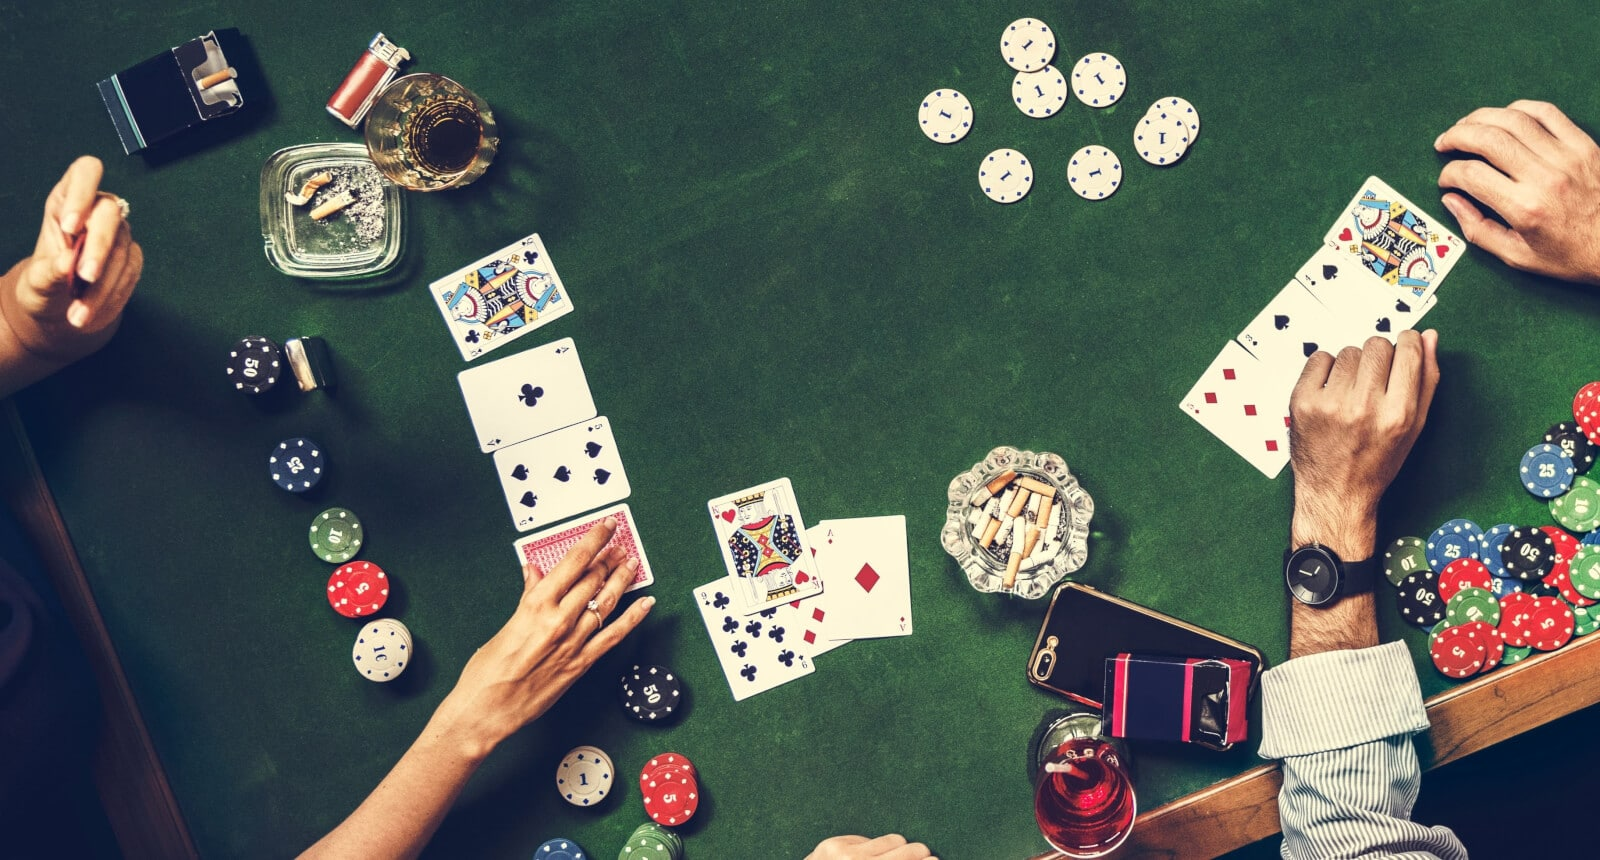 casino games to earn real money